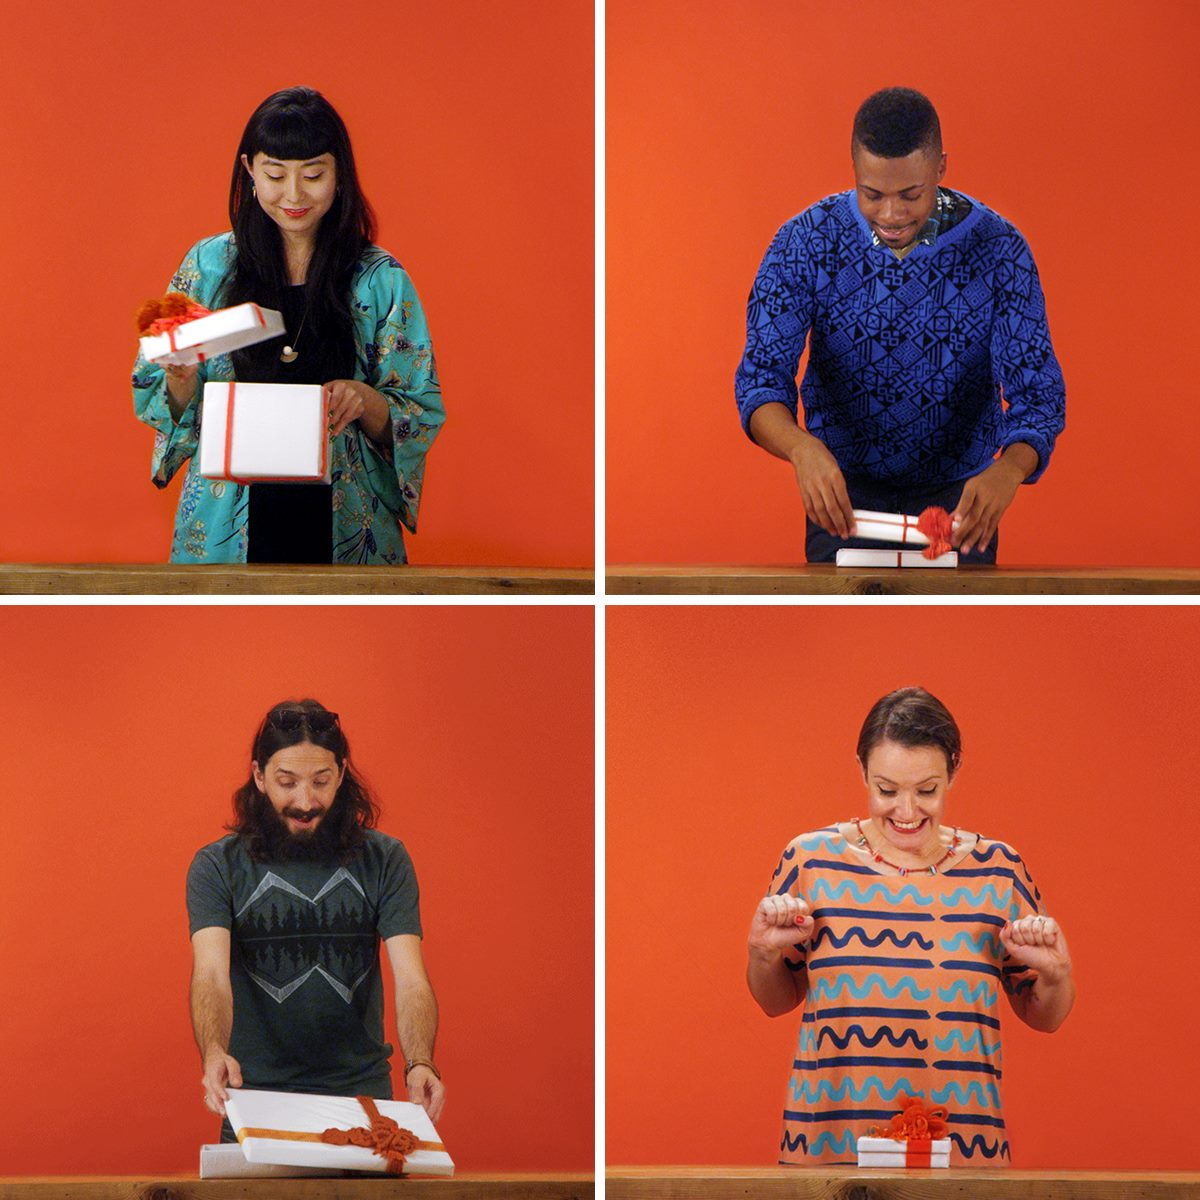 As their Lead Social Media Specialist, I helped to conceptualize and execute Etsy's 2014 holiday campaign. Photo by Etsy